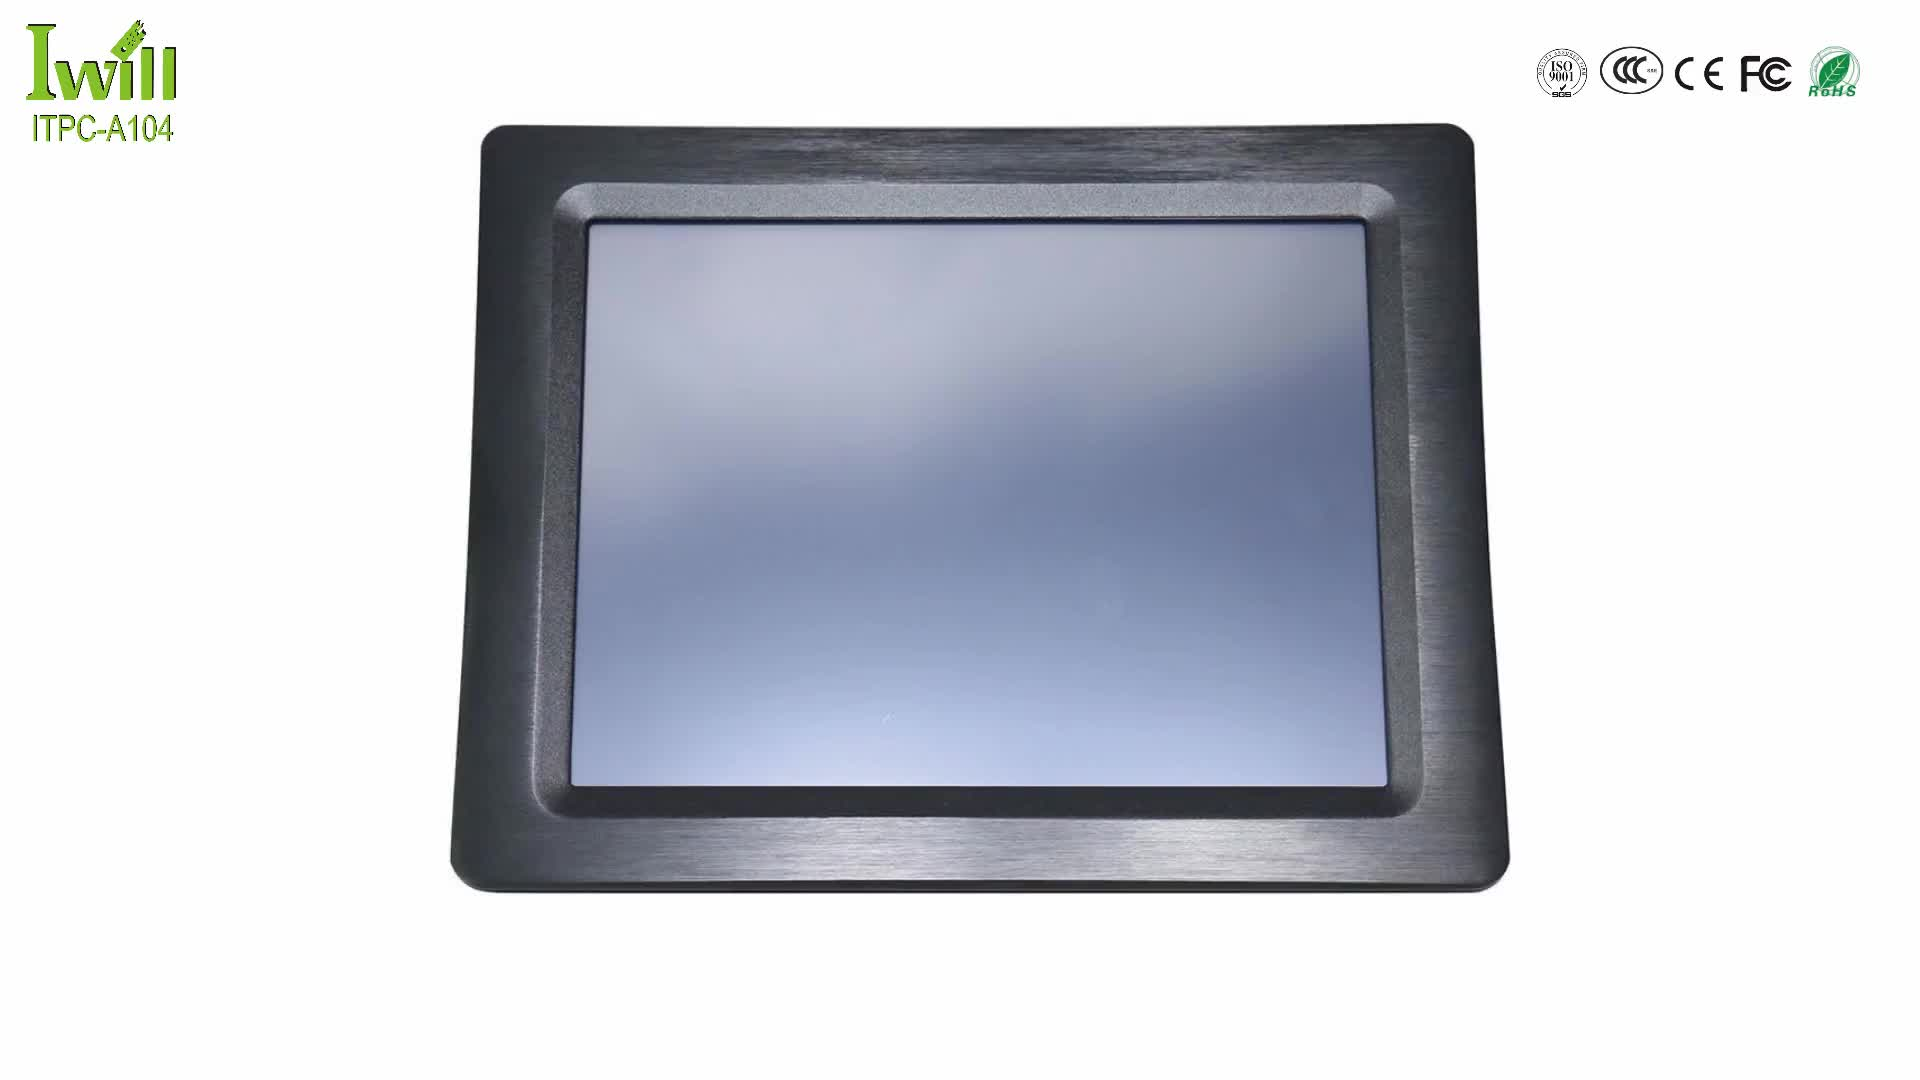 "Iwill ITPC-A104 10.4"" industrial touch screen panel pc linux with Intel baytrail J1900 quad core cpu"